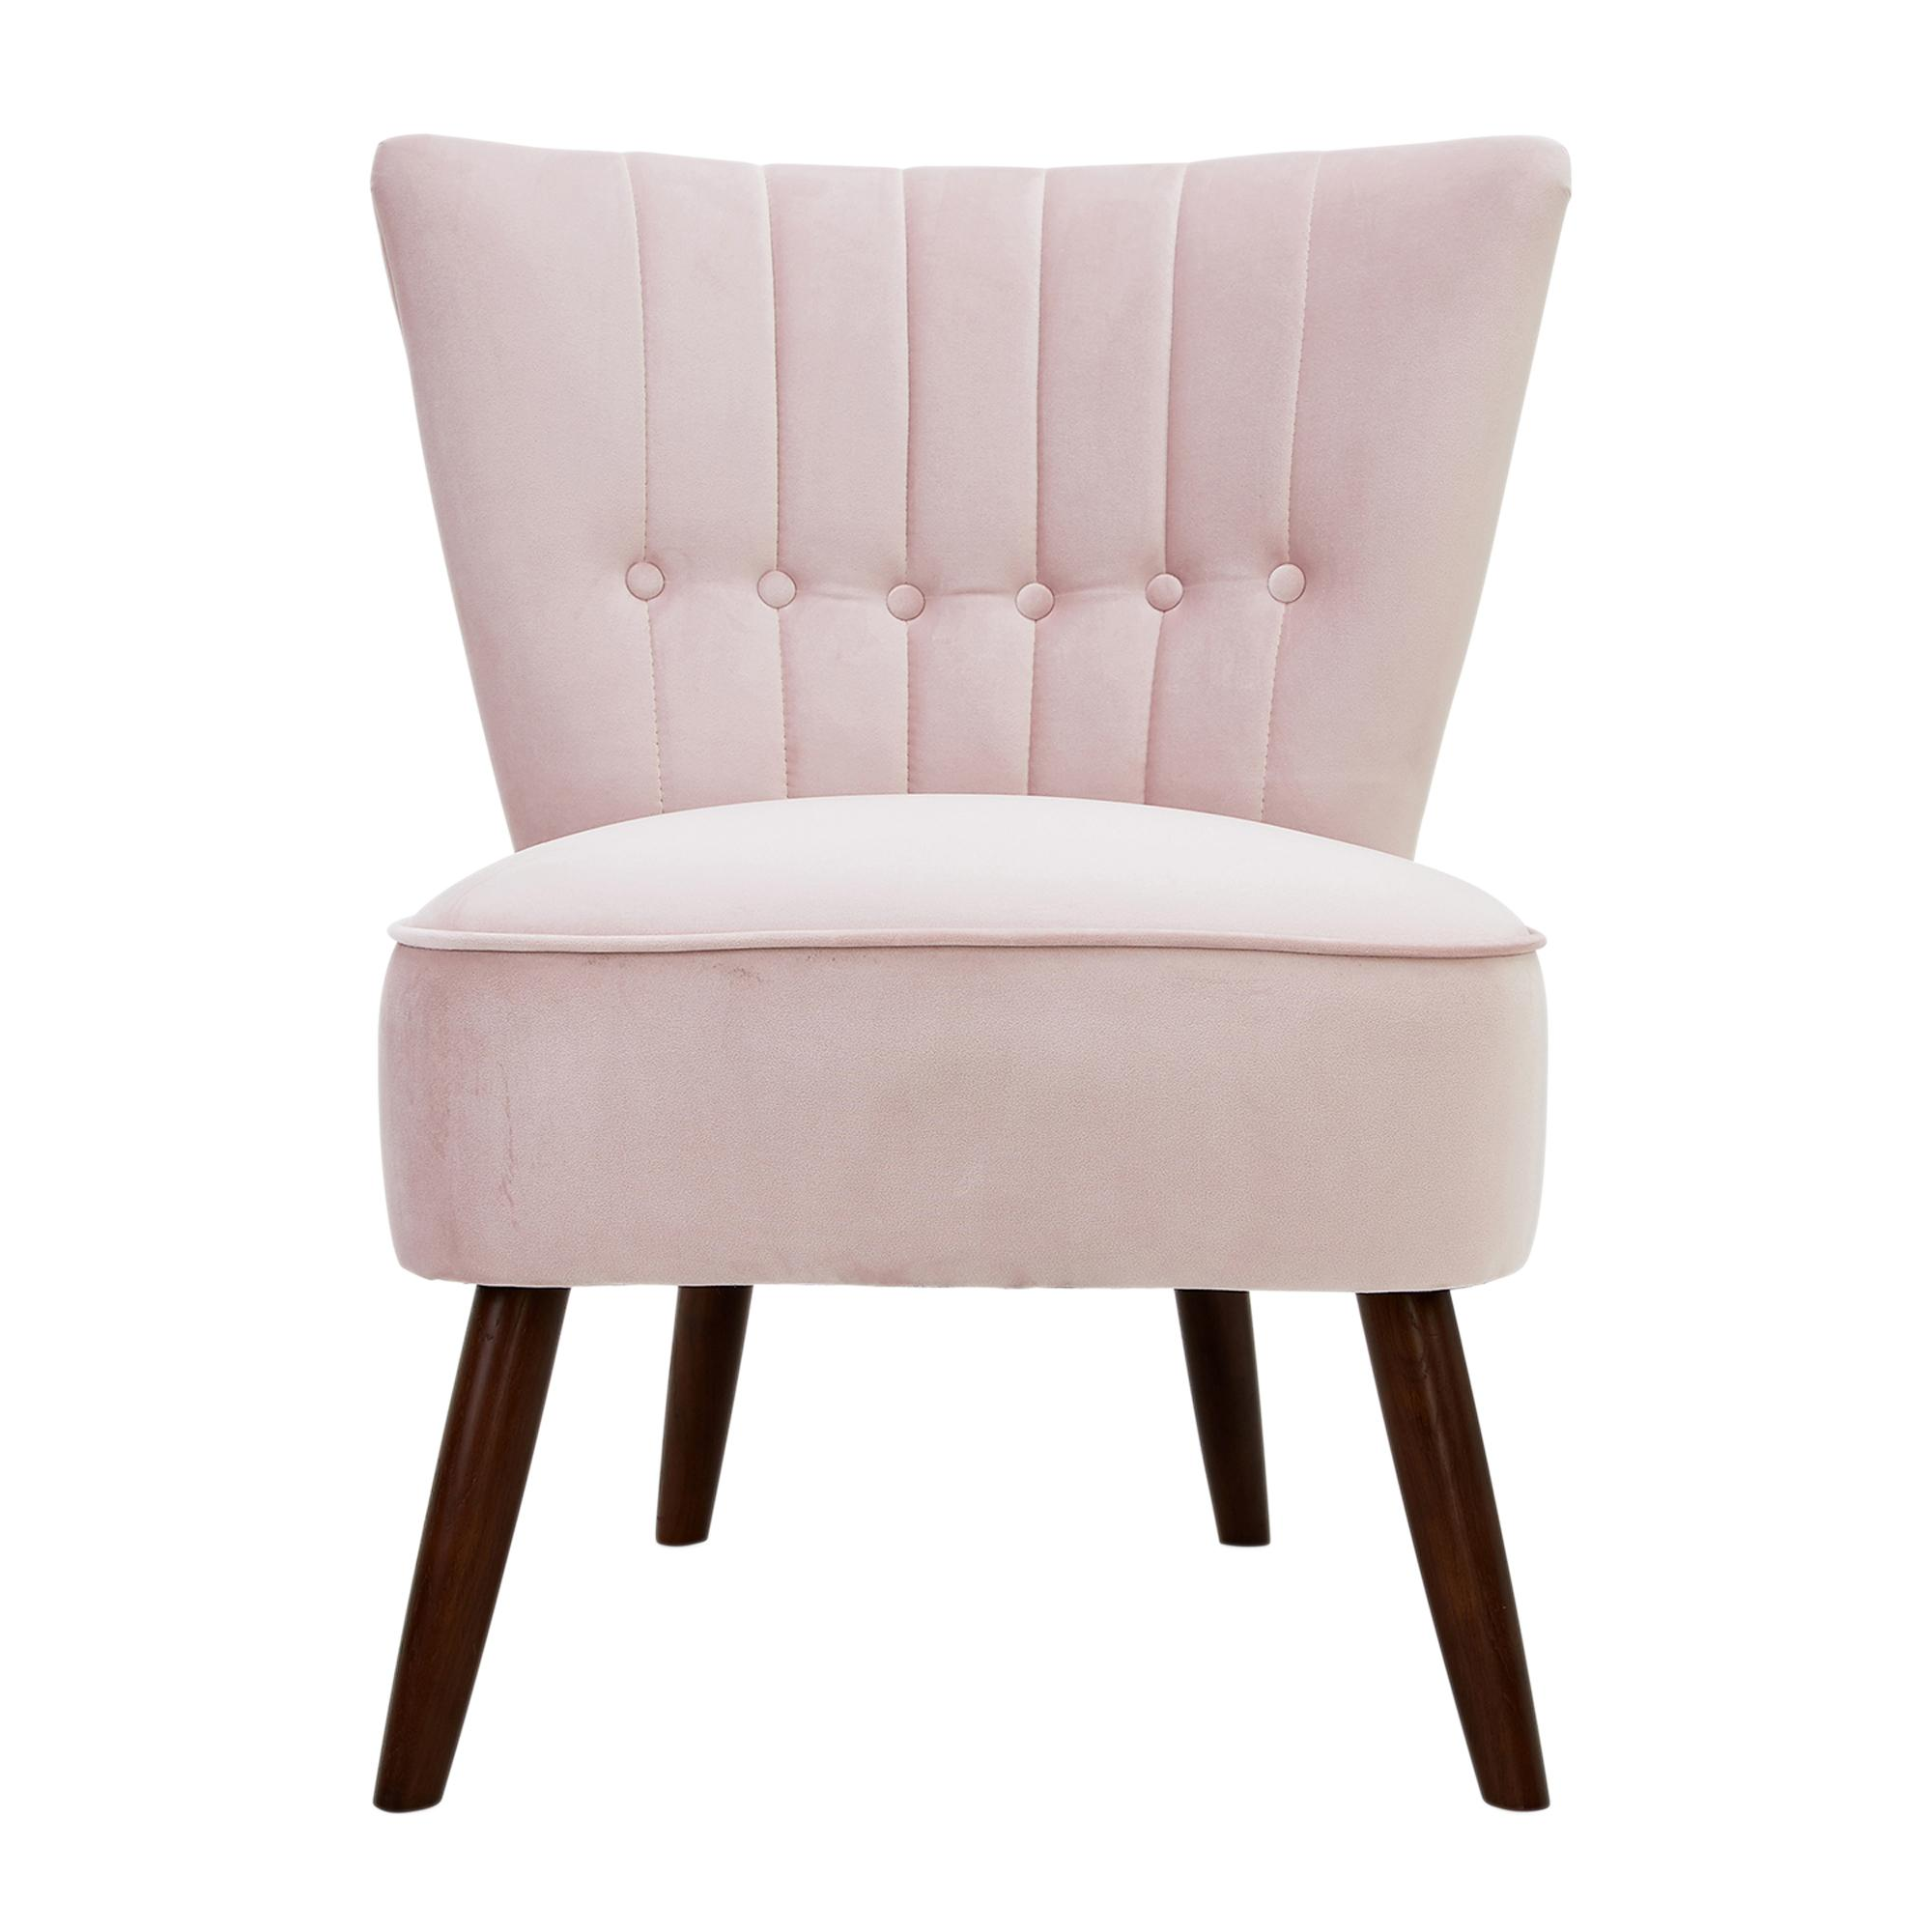 Isla Chair - Blush Pink